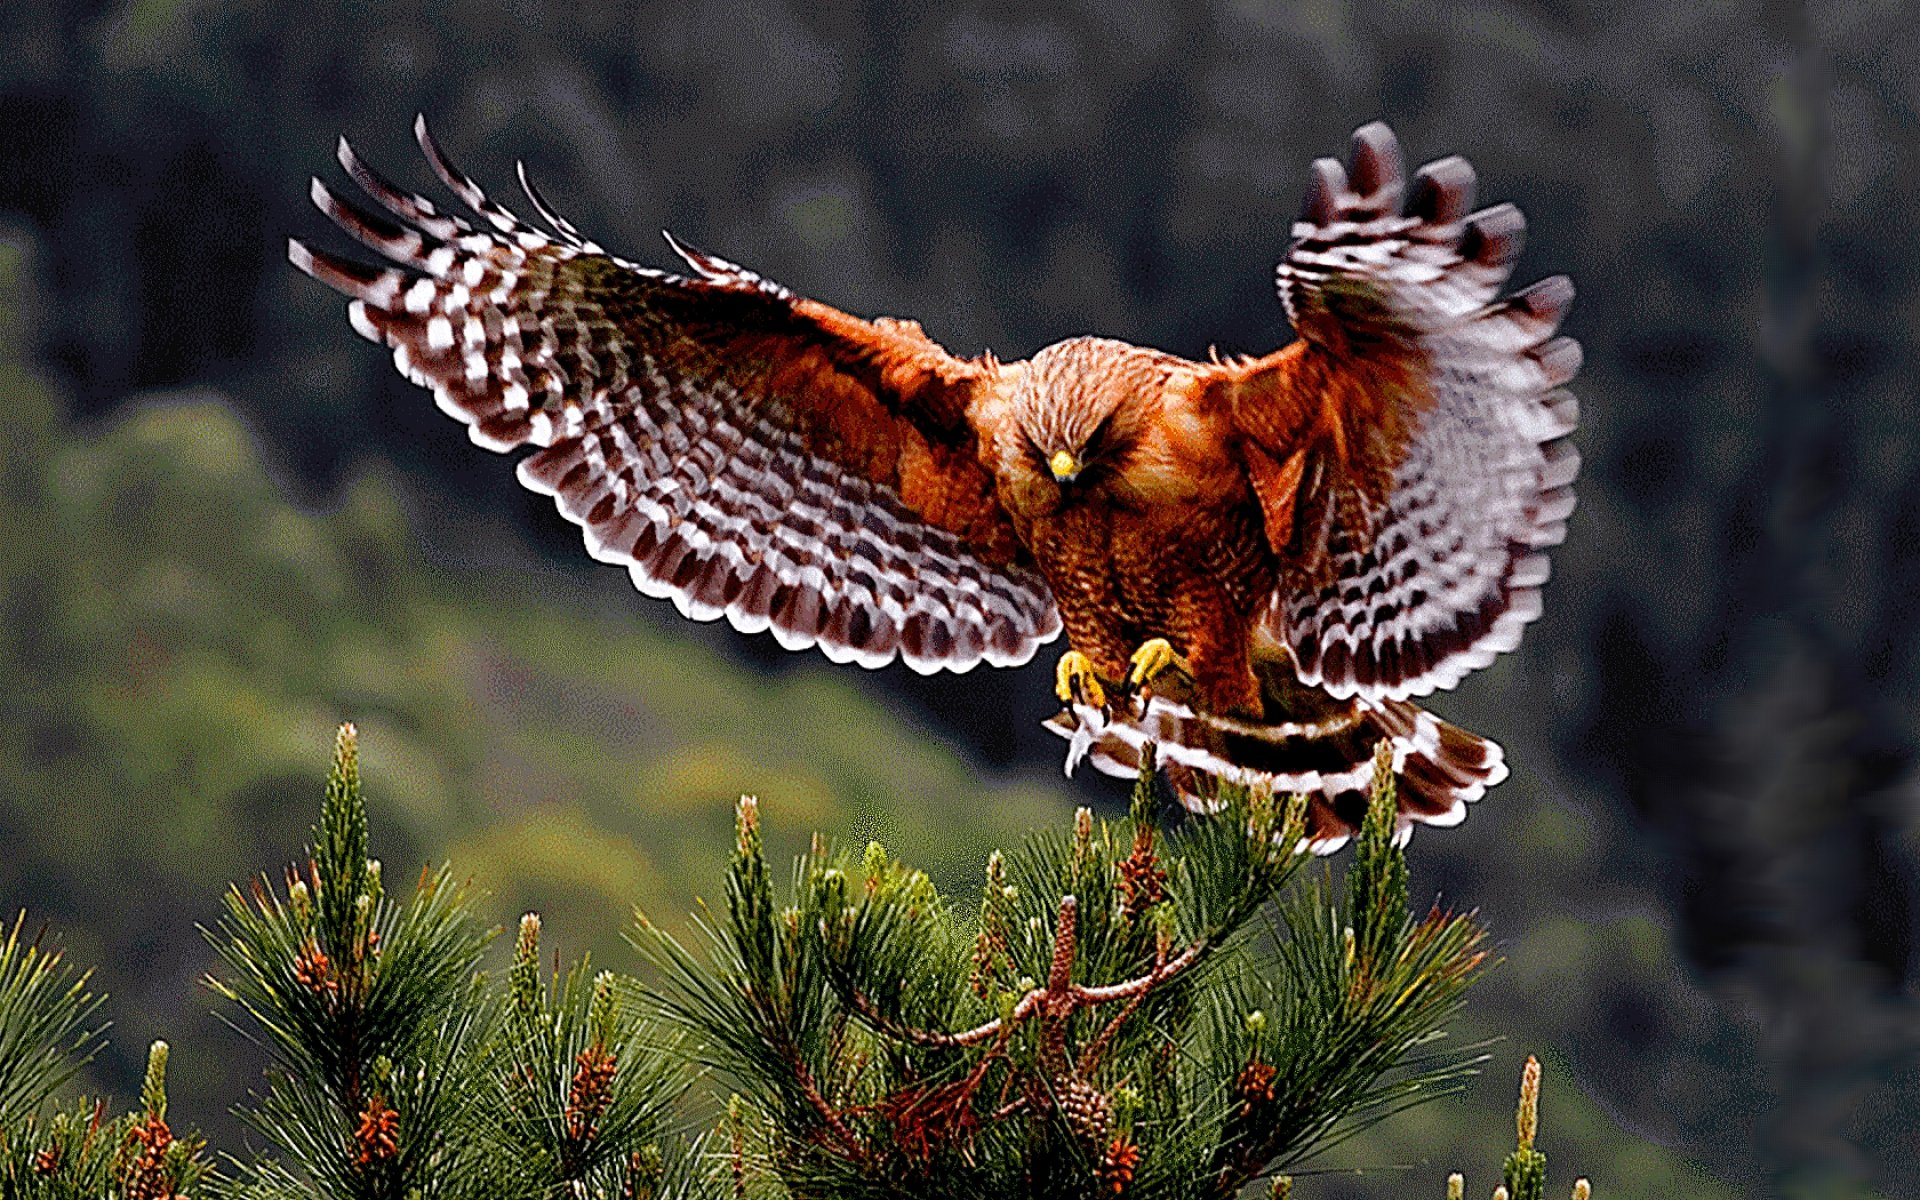 animals in flight wallpaper desk - photo #20